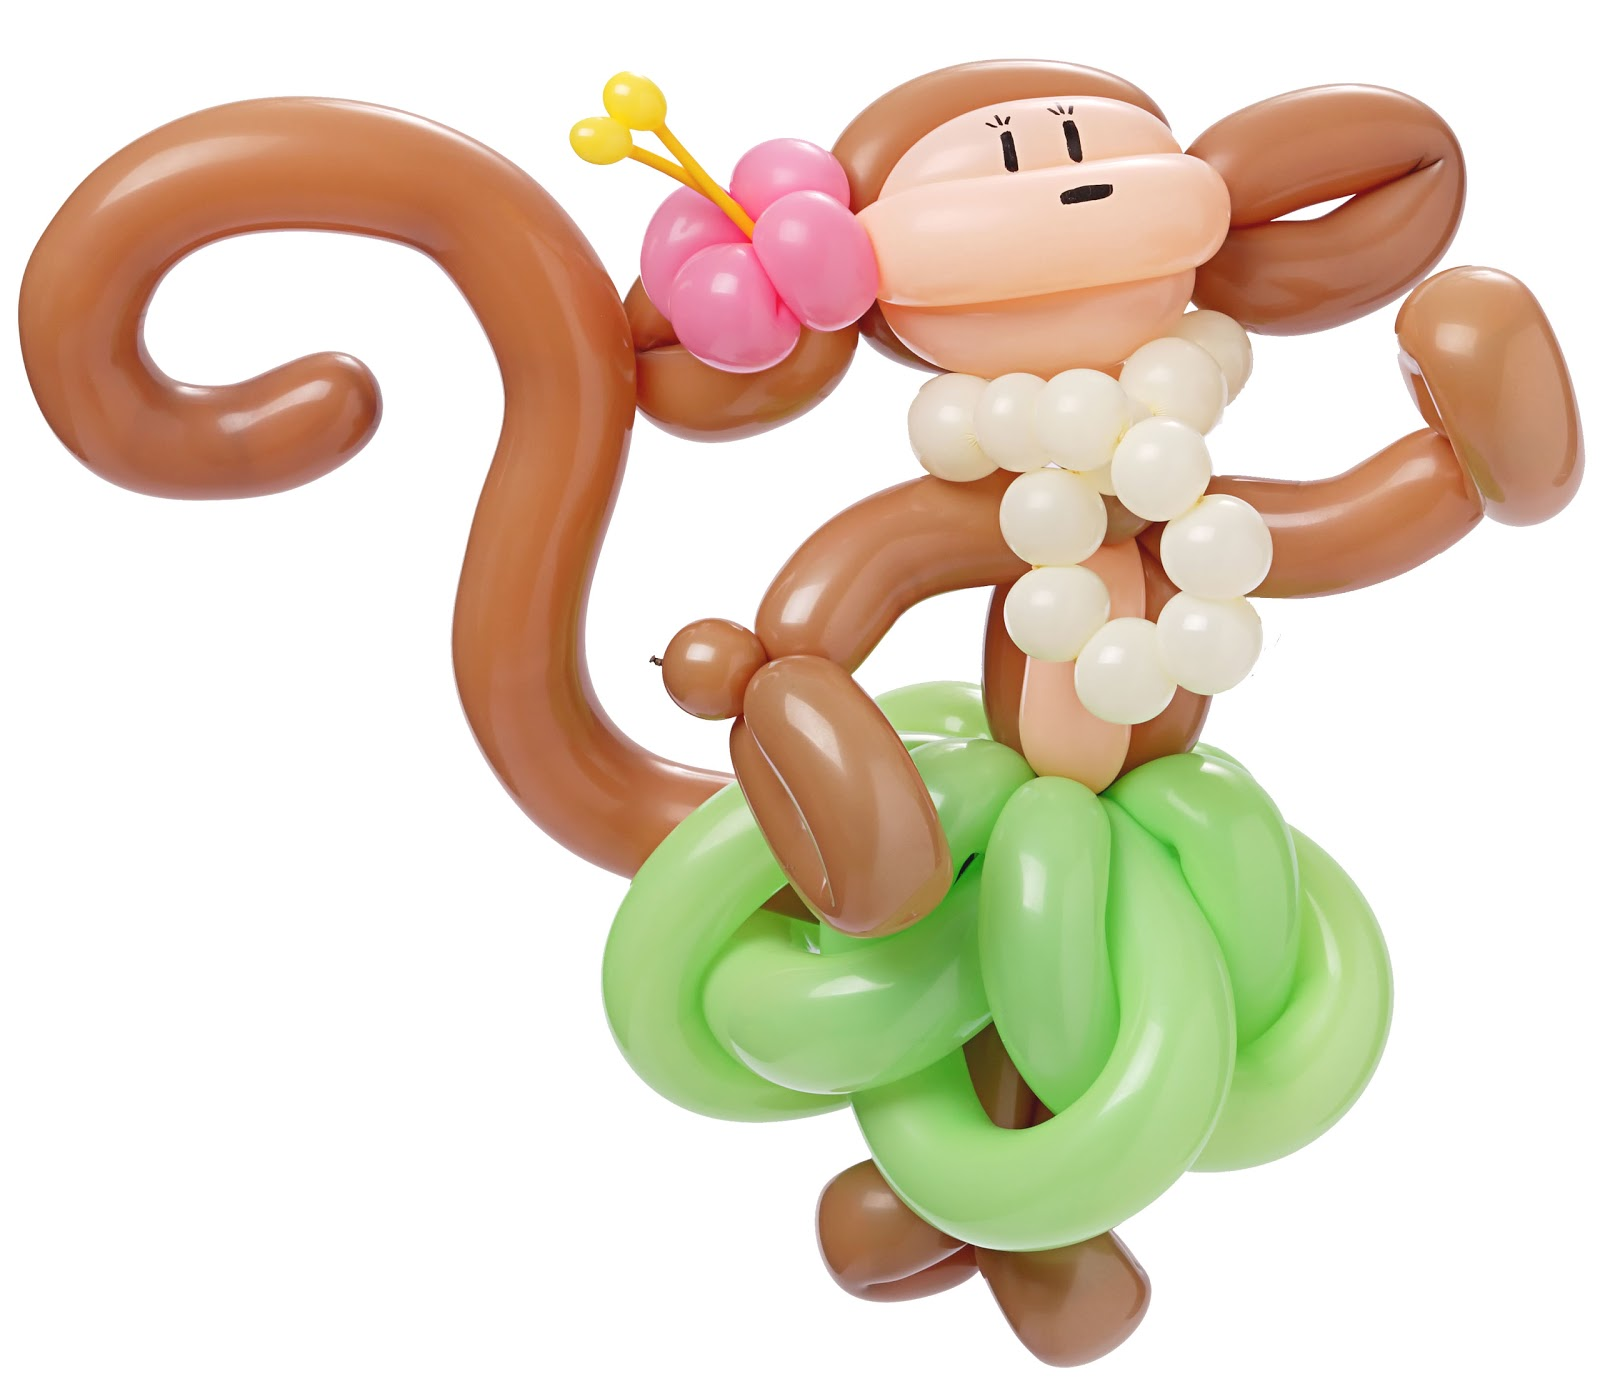 balloon shooter monkey